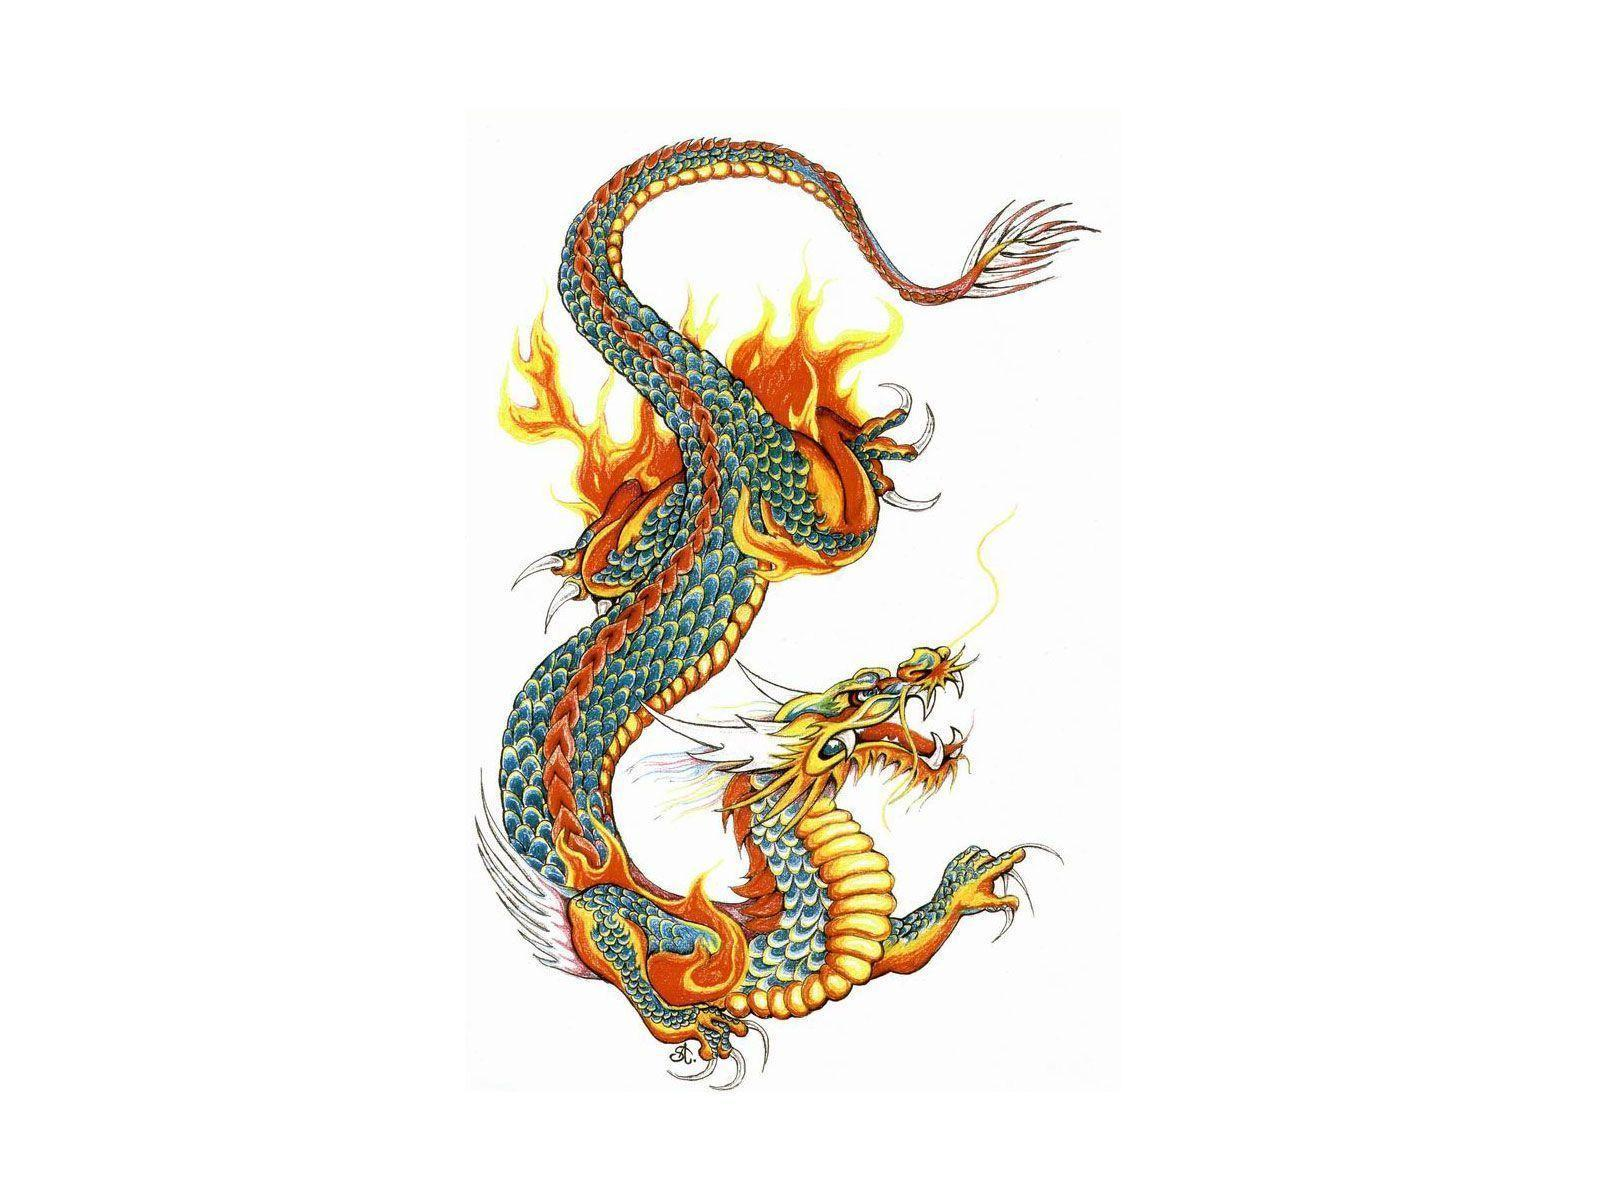 dragon tattoo wallpapers wallpaper cave. Black Bedroom Furniture Sets. Home Design Ideas